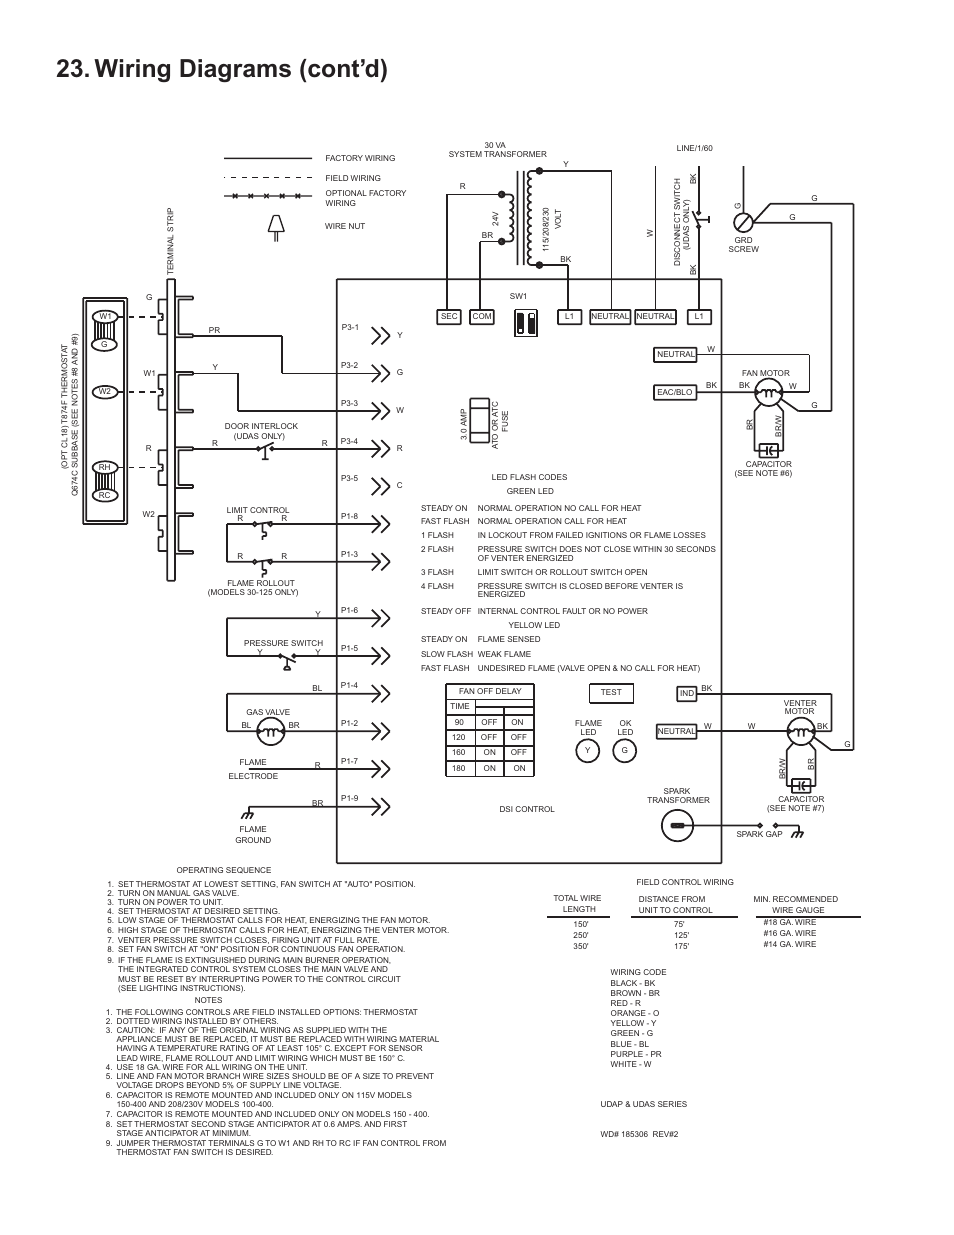 hight resolution of  built buses logo thomas college wiring diagrams cont d thomas betts udap user manual page